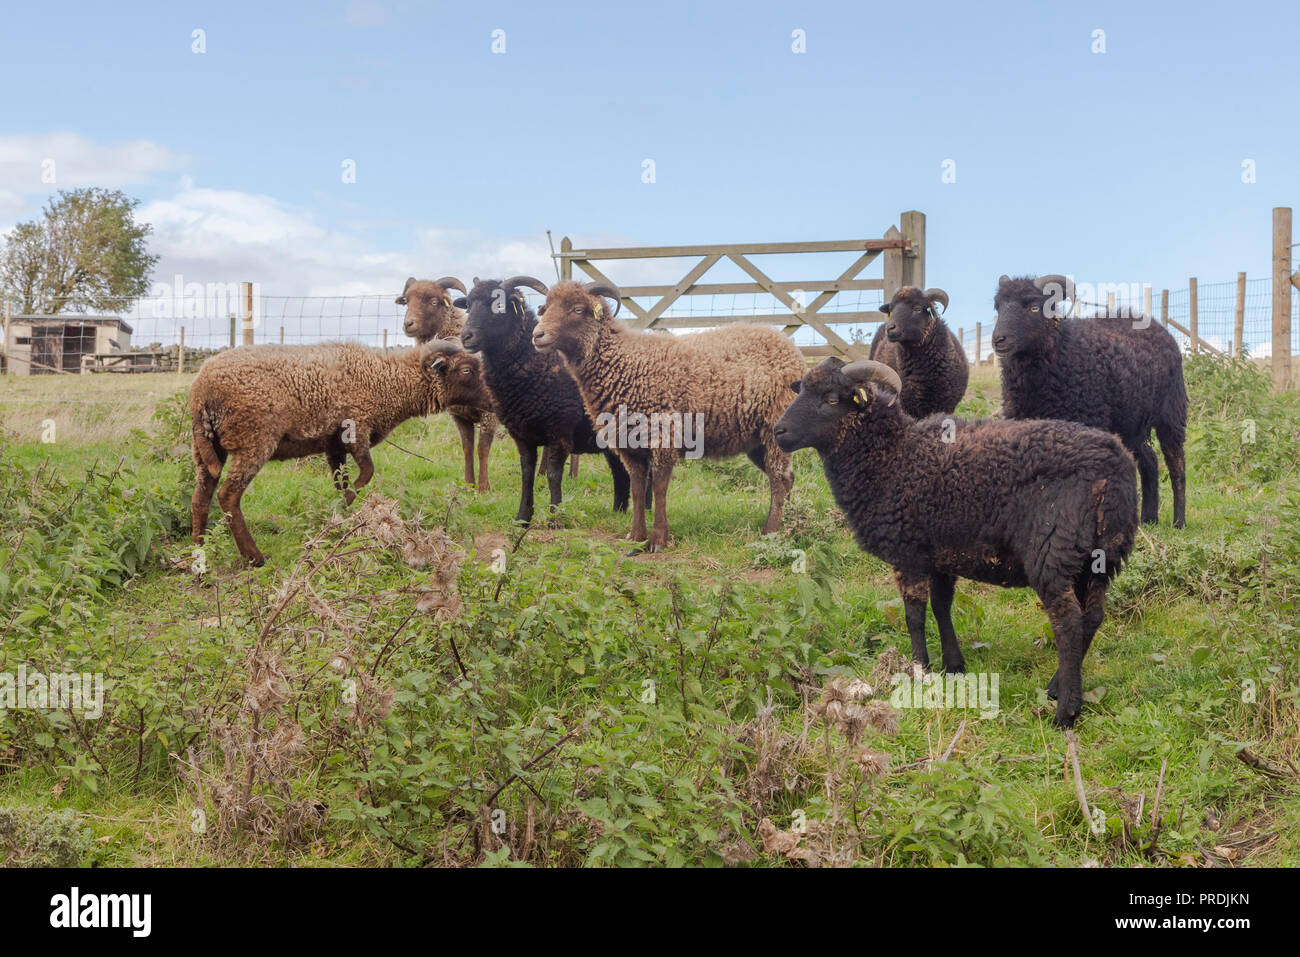 Ouessant sheep, a rare breed of heritage sheep originally from the island of Ouessant in Brittany. - Stock Image